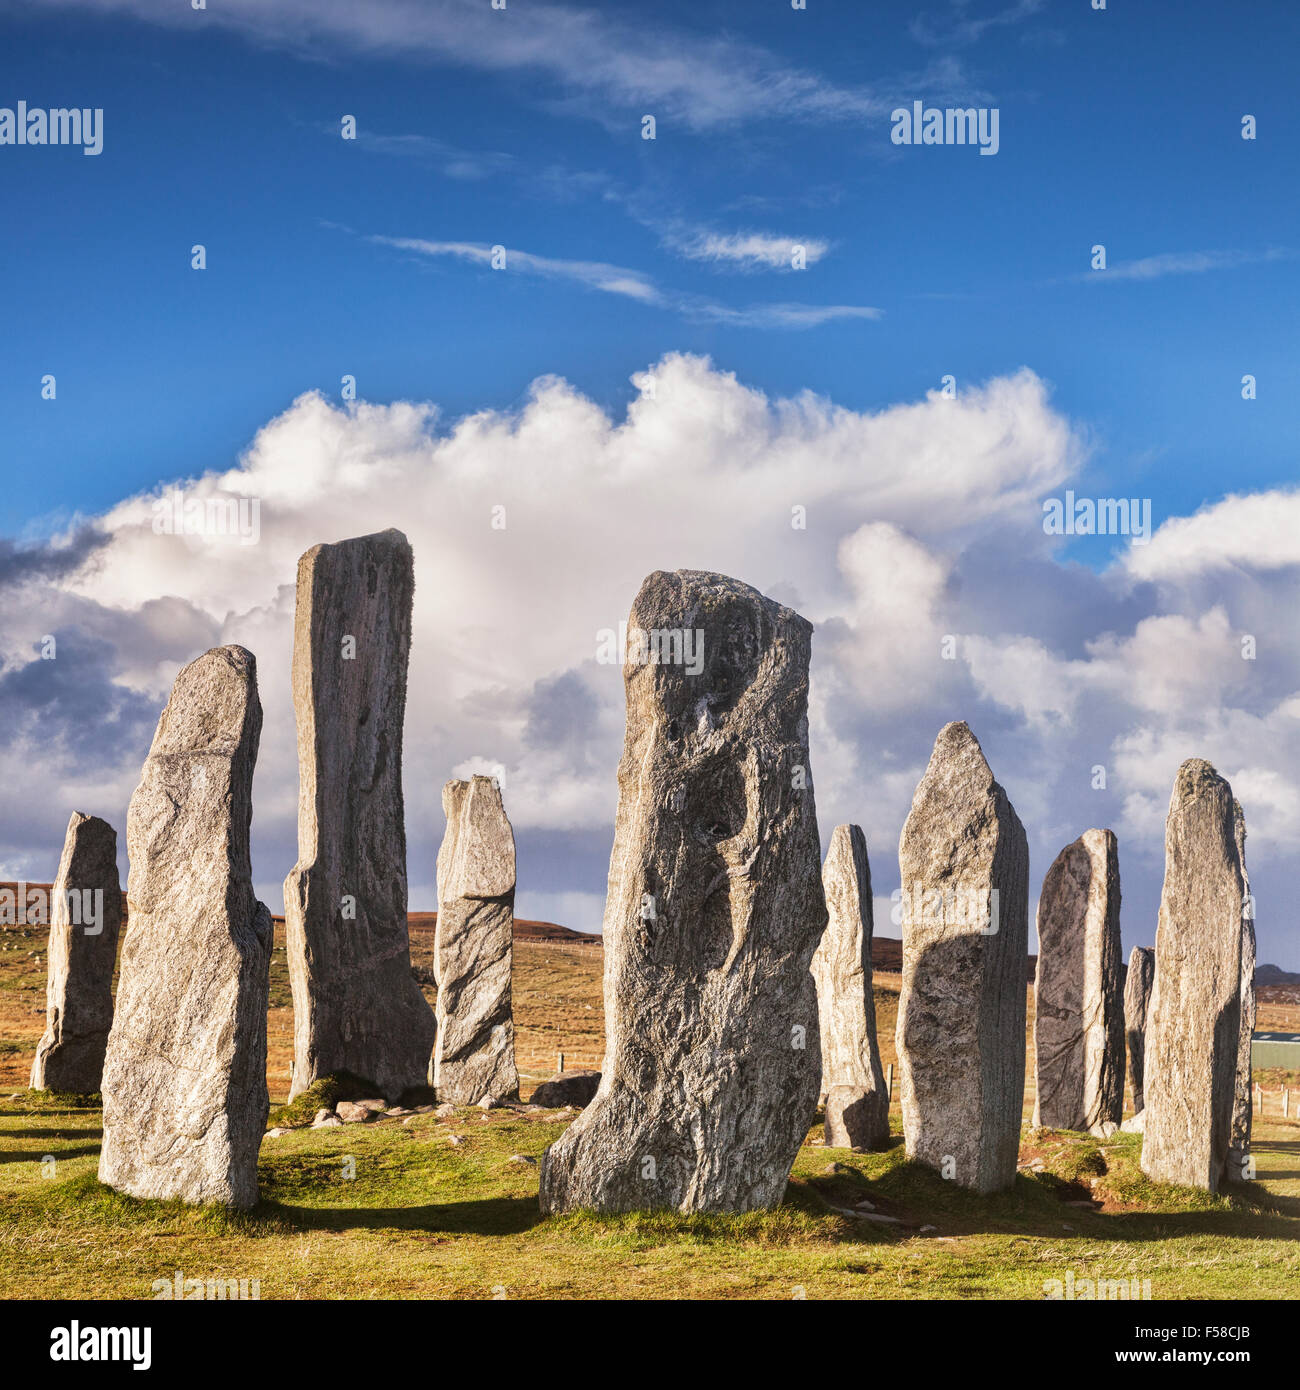 Stone circle at Callanish, Isle of Lewis, Western Isles, Outer Hebrides, Scotland, UK - Stock Image